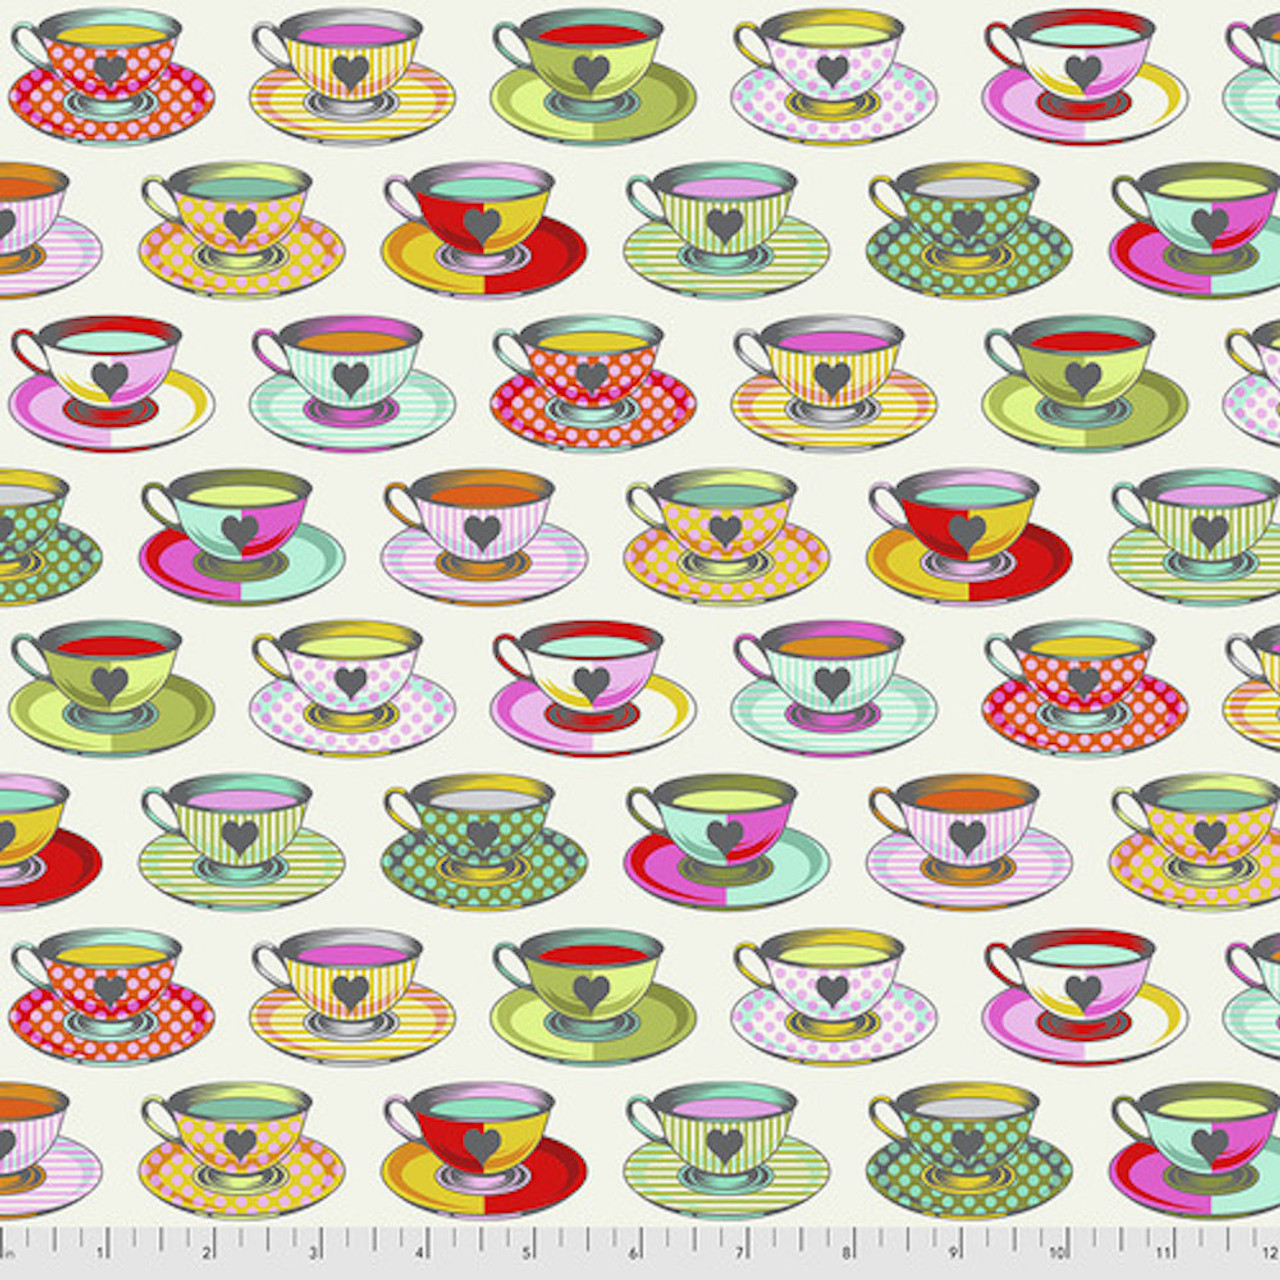 Tula Pink PWTP163 Curiouser & Curiouser Tea Time Sugar Cotton Fabric By Yd